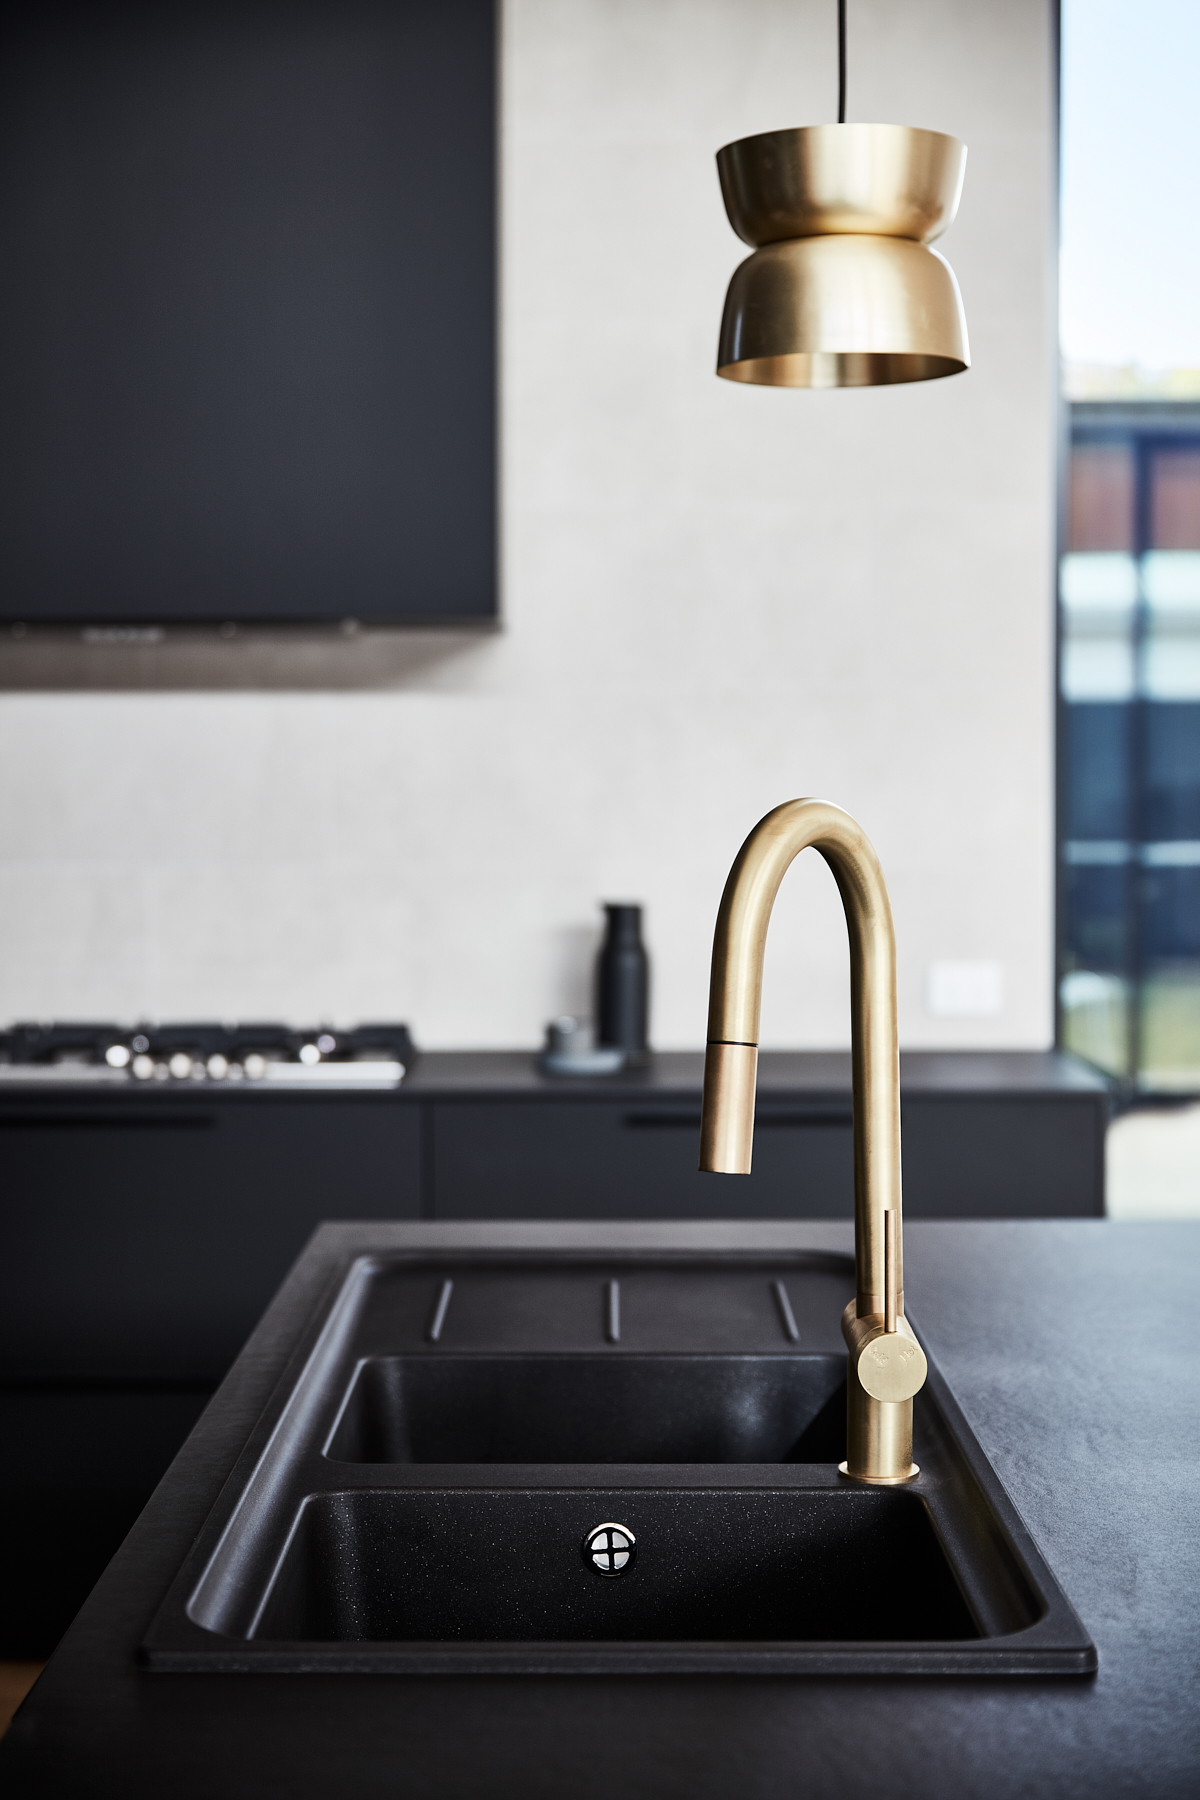 Brass Tapware Life Spaces Group Auhaus 1.jpg